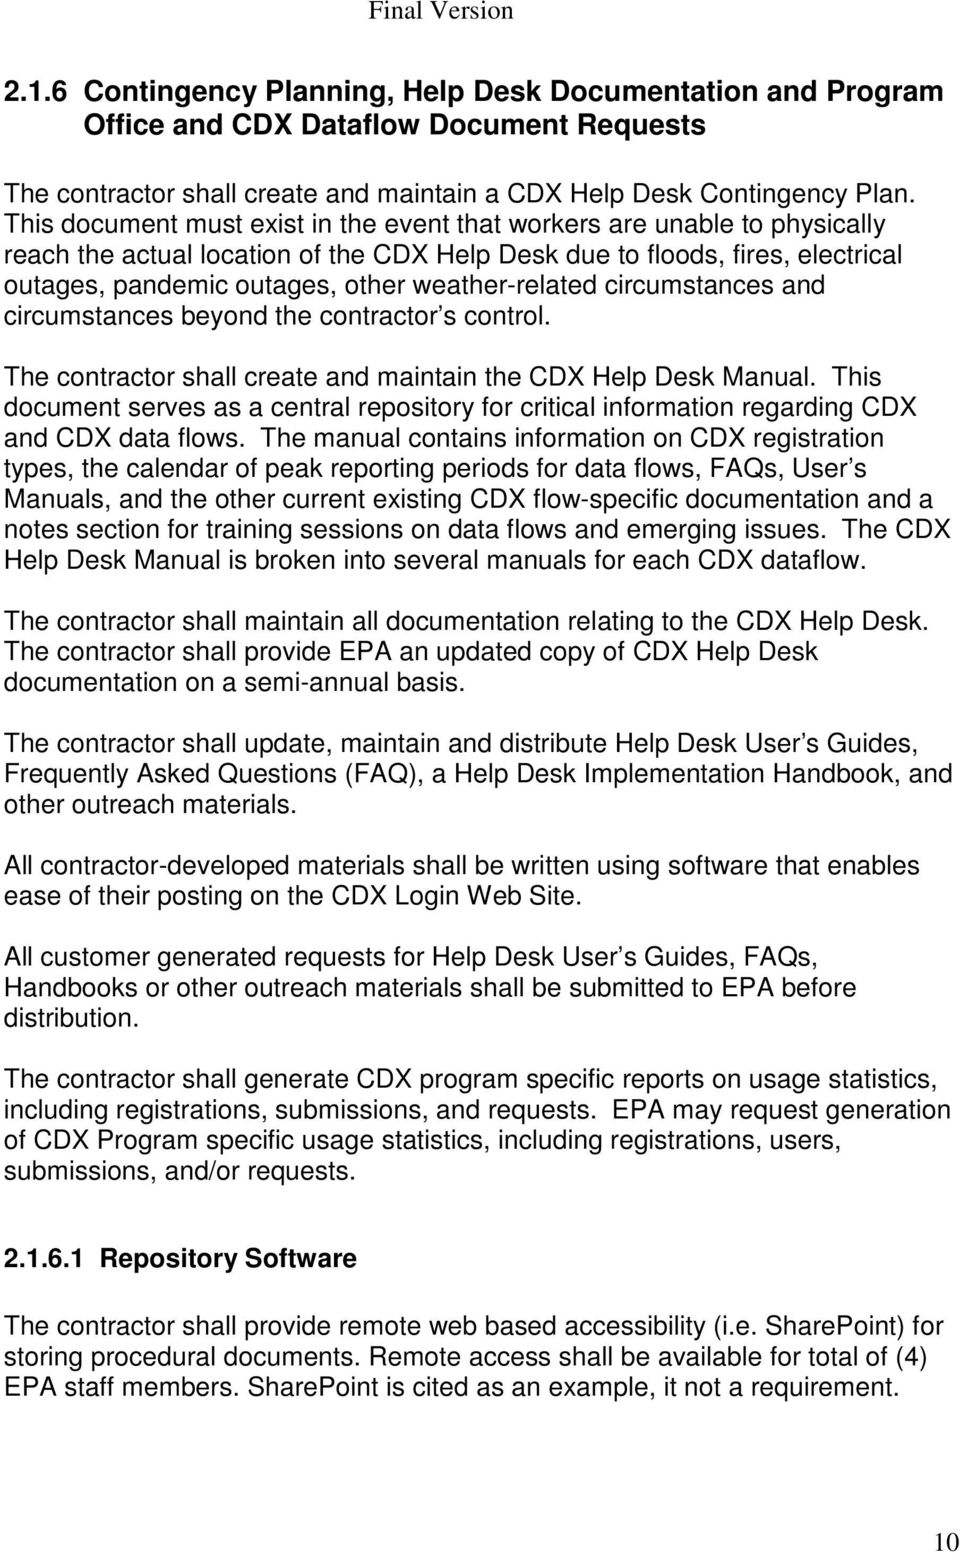 weather-related circumstances and circumstances beyond the contractor s control. The contractor shall create and maintain the CDX Help Desk Manual.